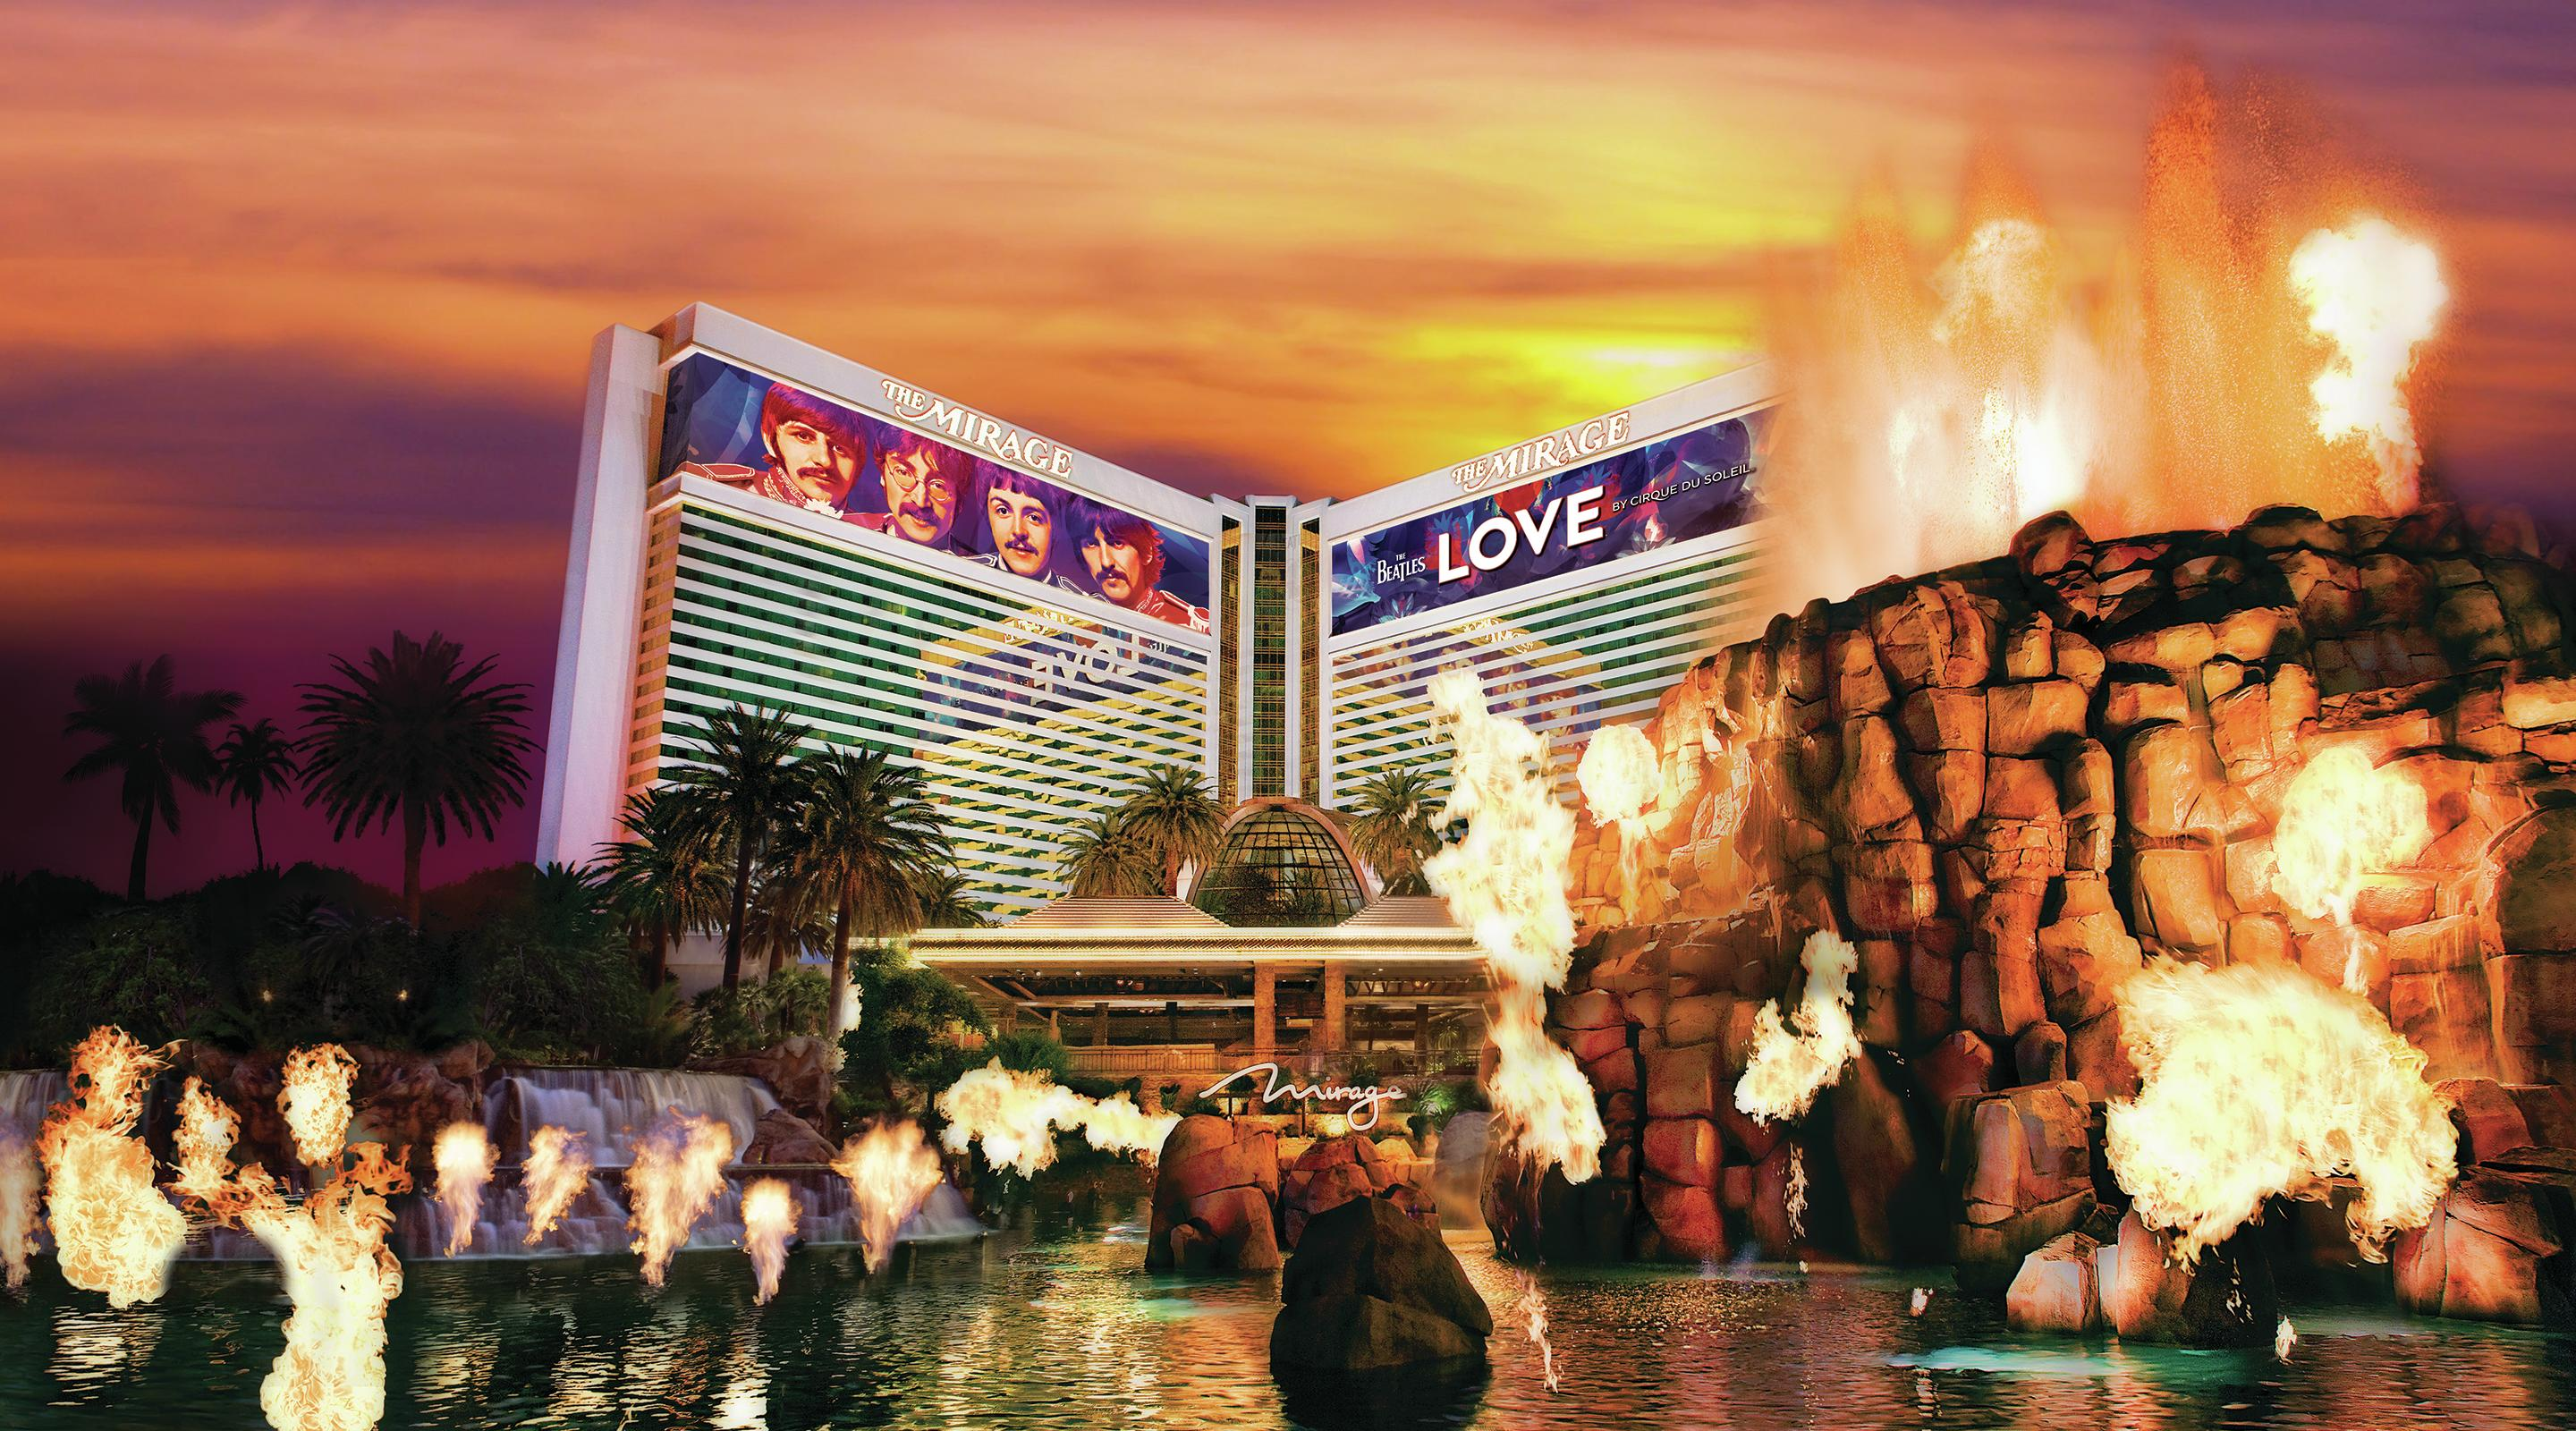 Mirage casino phone number types of indina casino jobs